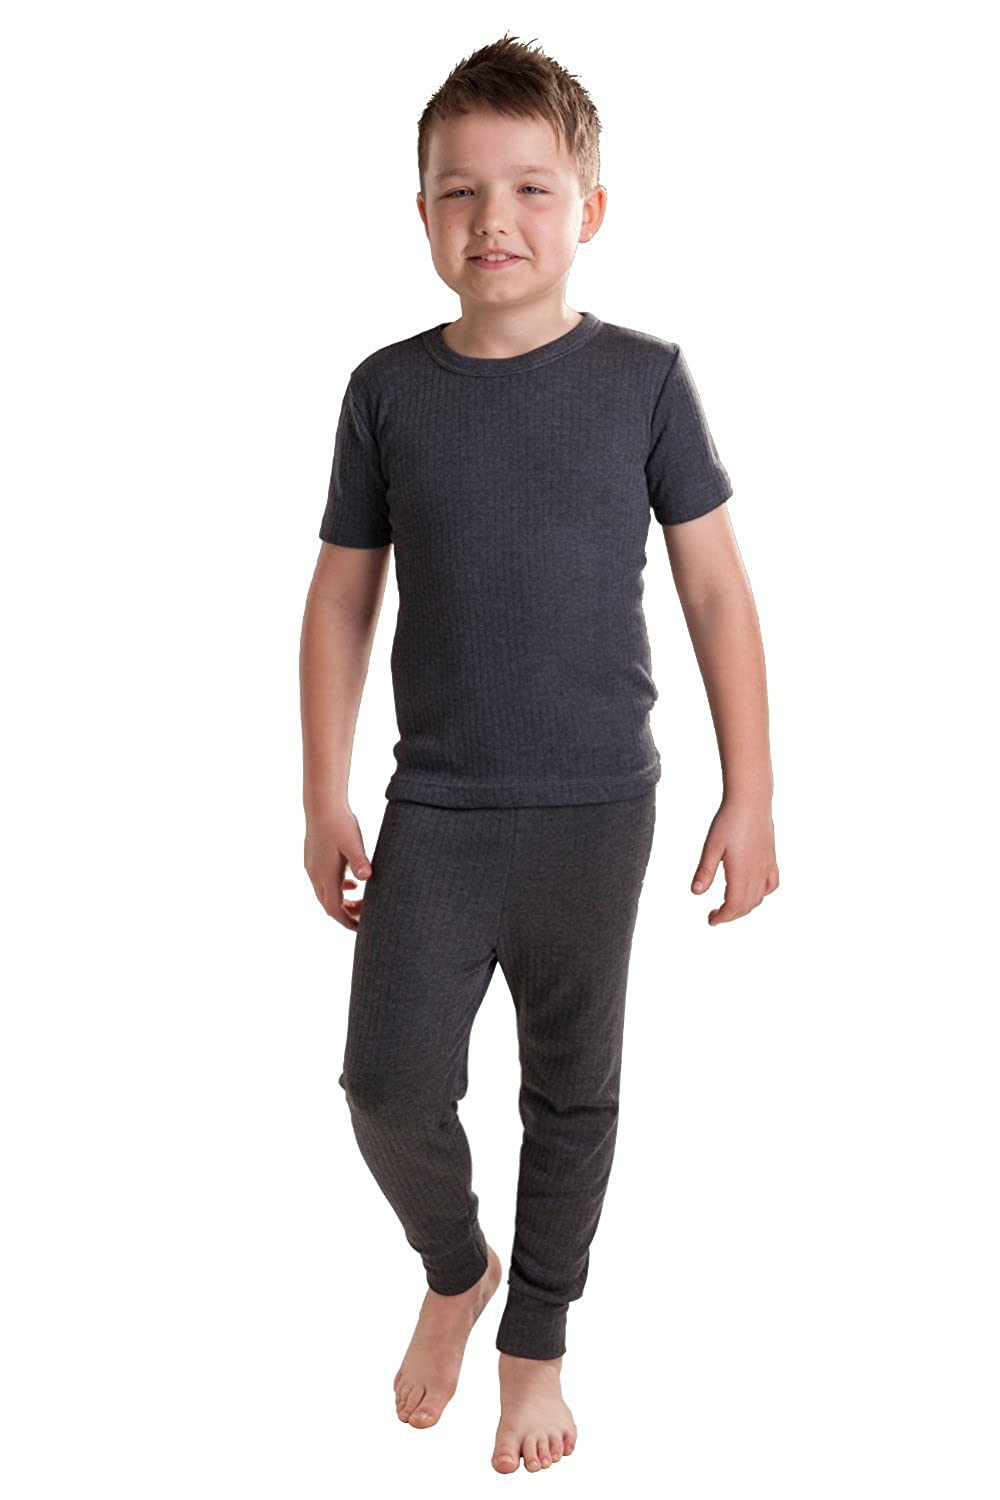 Short Sleeve Vest and Long Pants OCTAVE/® Boys Thermal Underwear Set